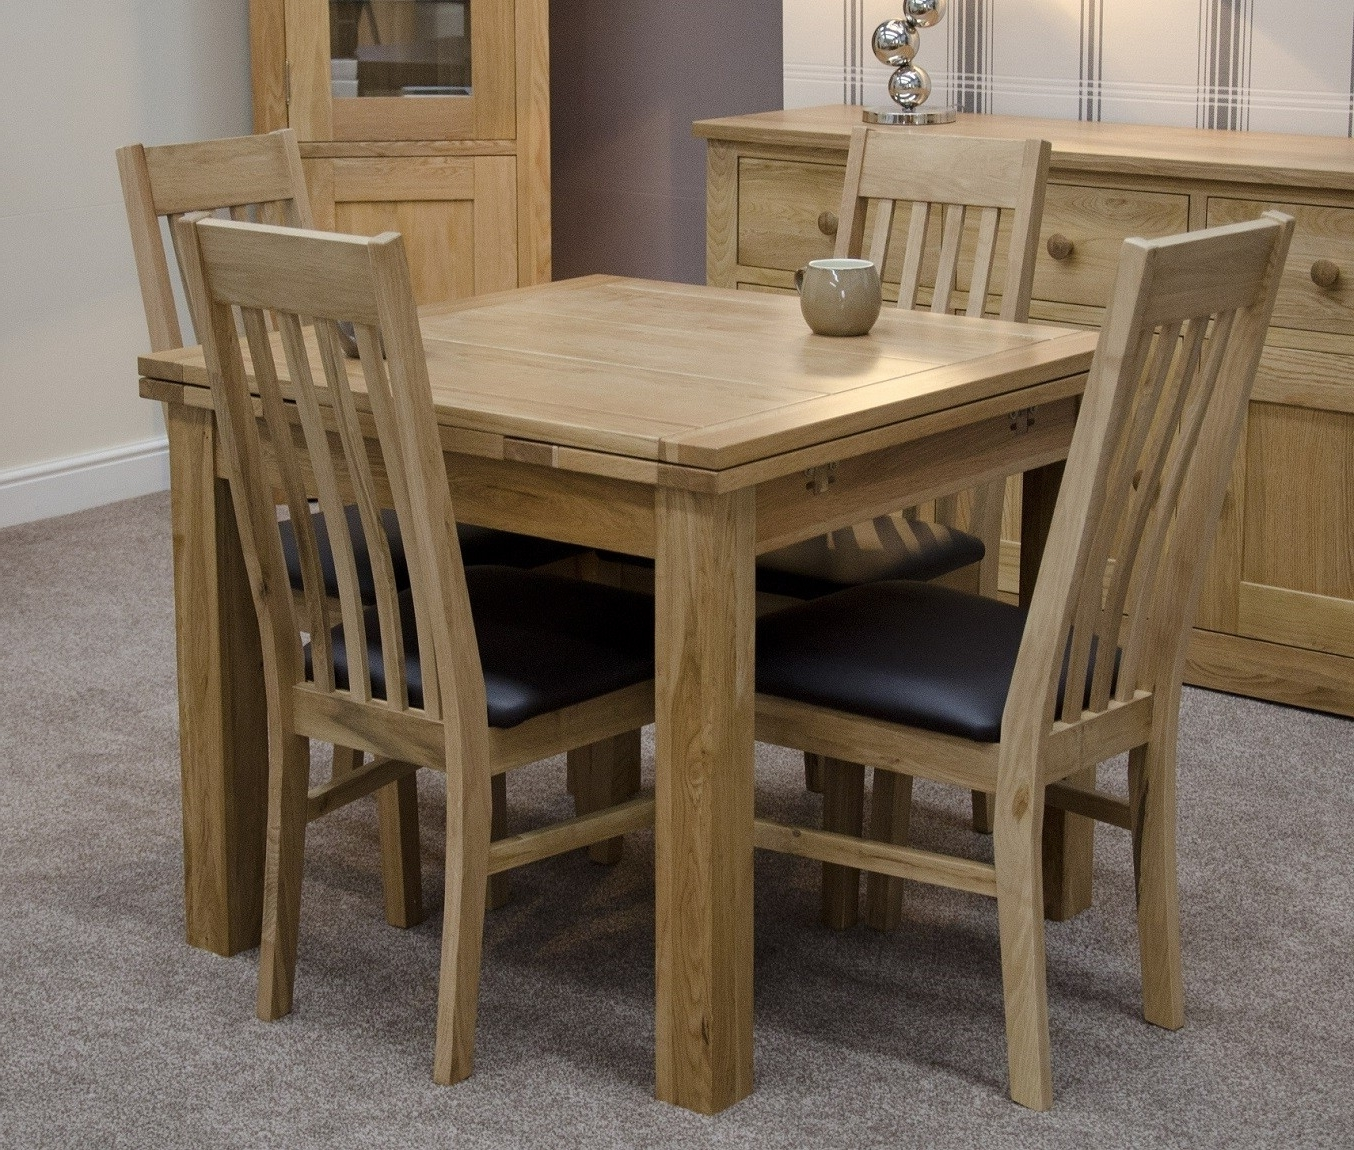 Oak Furniture Uk (View 20 of 25)